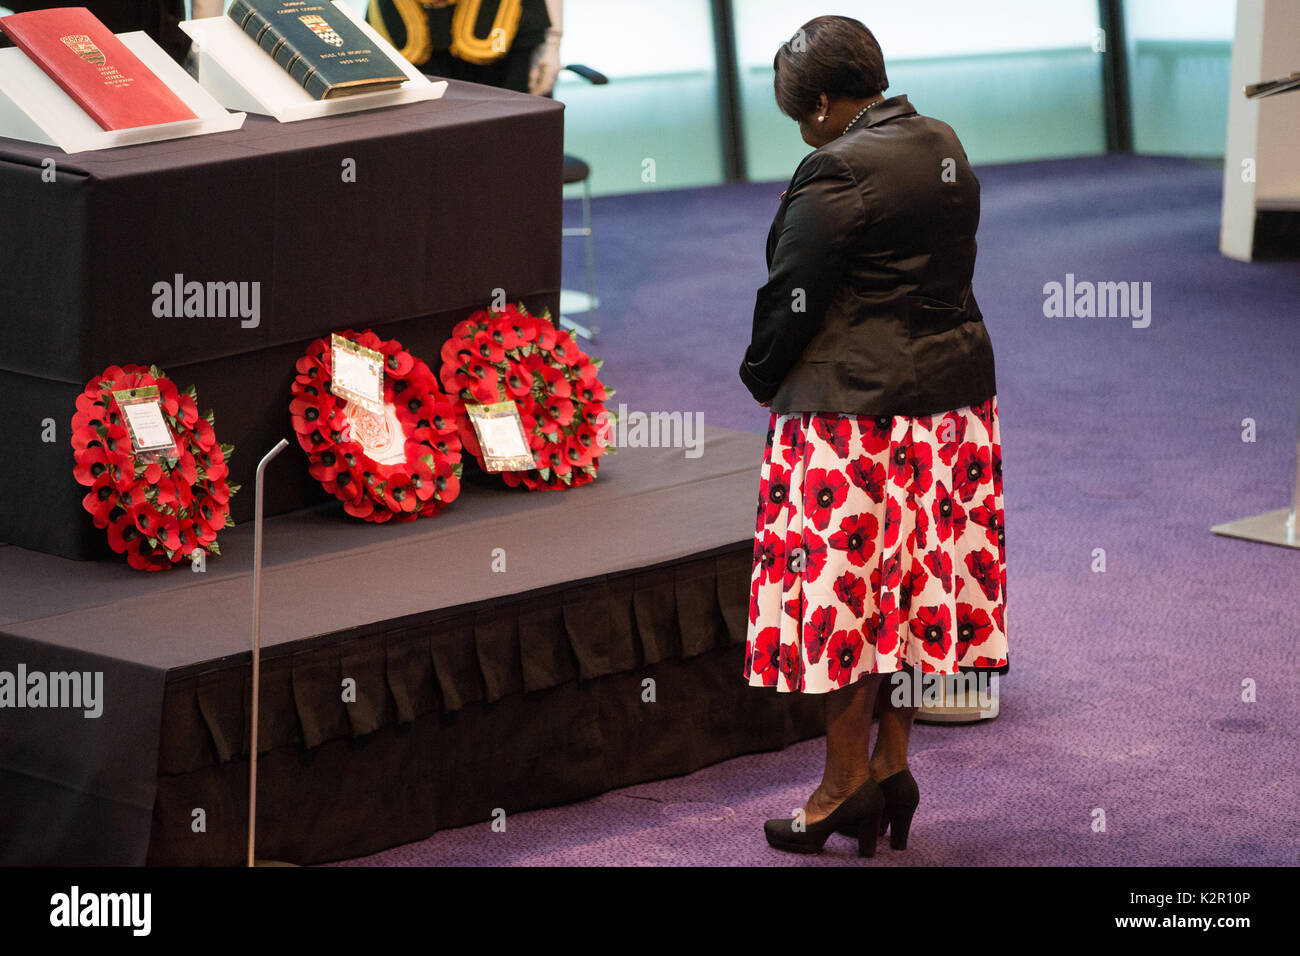 London, UK. 10th Nov, 2017. Jennette Arnold OBE AM, Chair of the London Assembly, lays a wreath at the Annual Service of Remembrance, attended by Sadiq Khan, Mayor of London, Members of Parliament, London Assembly Members, Greater London Authority staff, representatives from London Government and public service organisations, and members of the Armed Forces, to commemorate those who served and lost their lives in the two world wars and other conflicts. Credit: Mark Kerrison/Alamy Live News - Stock Image